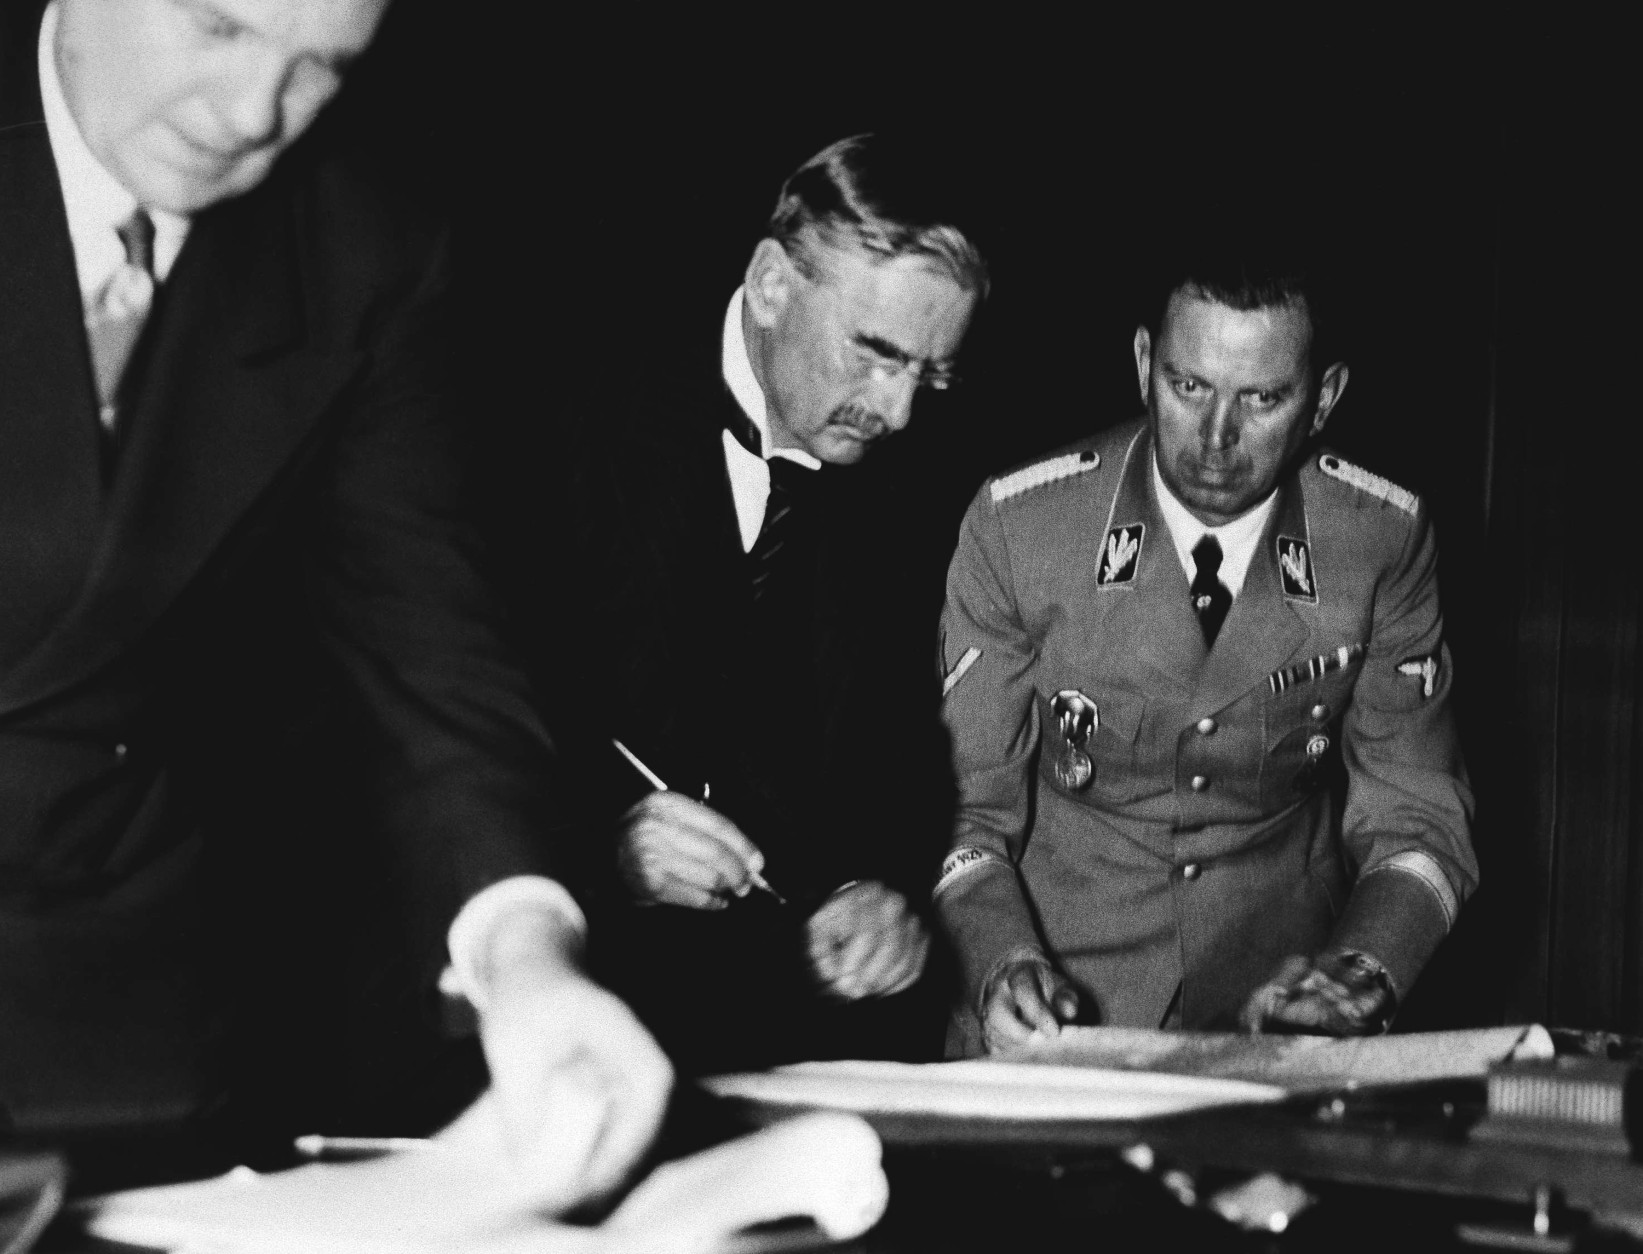 After long discussions the treaty for giving the Sudeten Districts from Czechoslovakia back to Germany was signed by the four statesmen Adolf Hitler, Benito Mussolini, Eduard Daladier and Sir Neville Chamberlain at the Fuehrerhouse at Munich on Sept. 30, 1938. Premier Neville Chamberlain rears the treaty over before signing. Left interpreter Dr. Paul Schmidt, Sir Neville Chamberlain and Hitler?s adjutant brigade leader Schaub. (AP Photo/Berlin Hoffman)